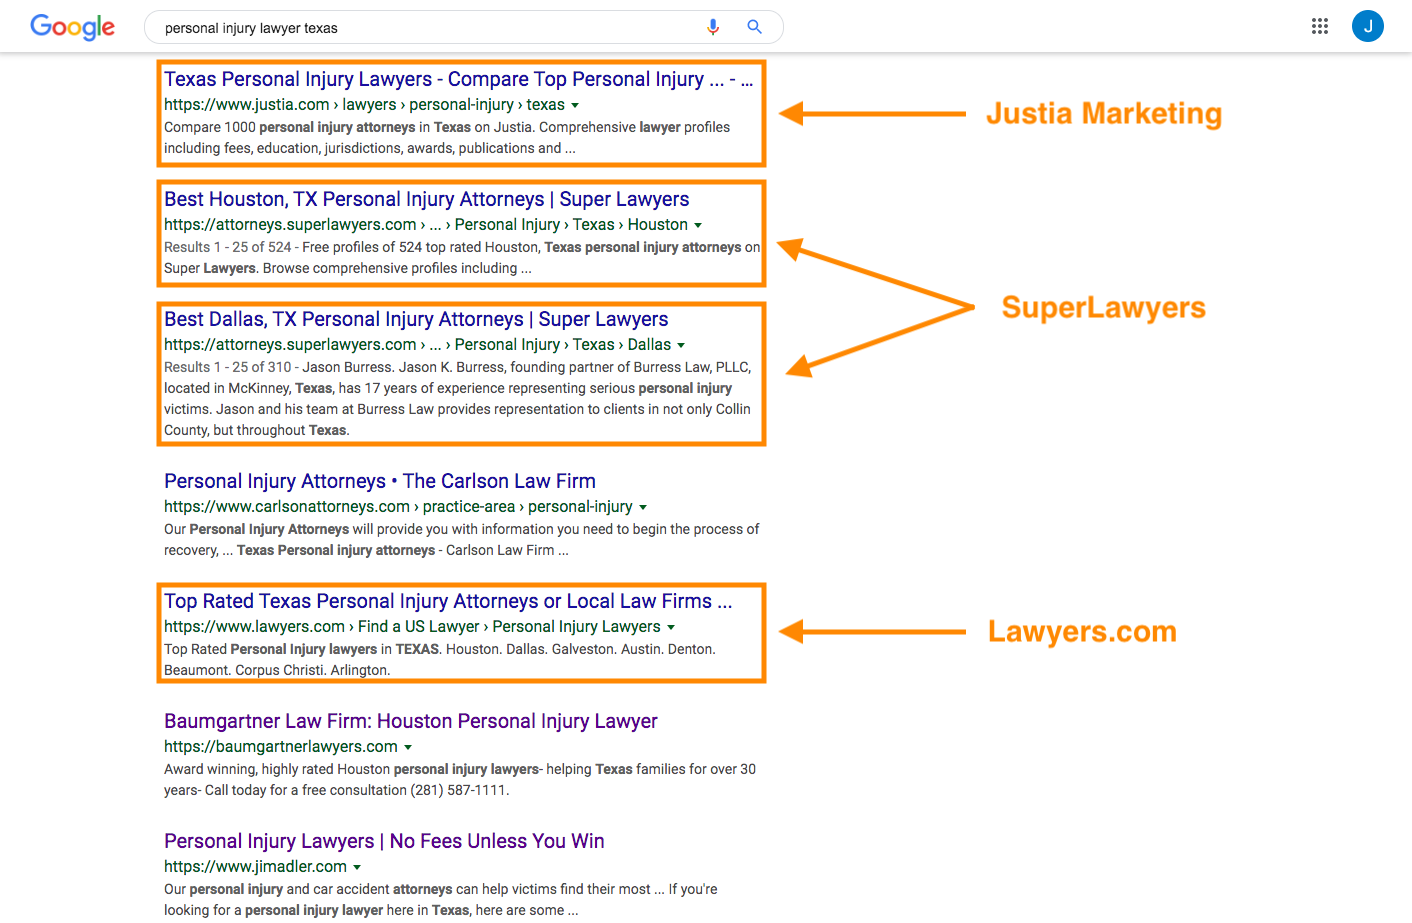 SEO for law firms.